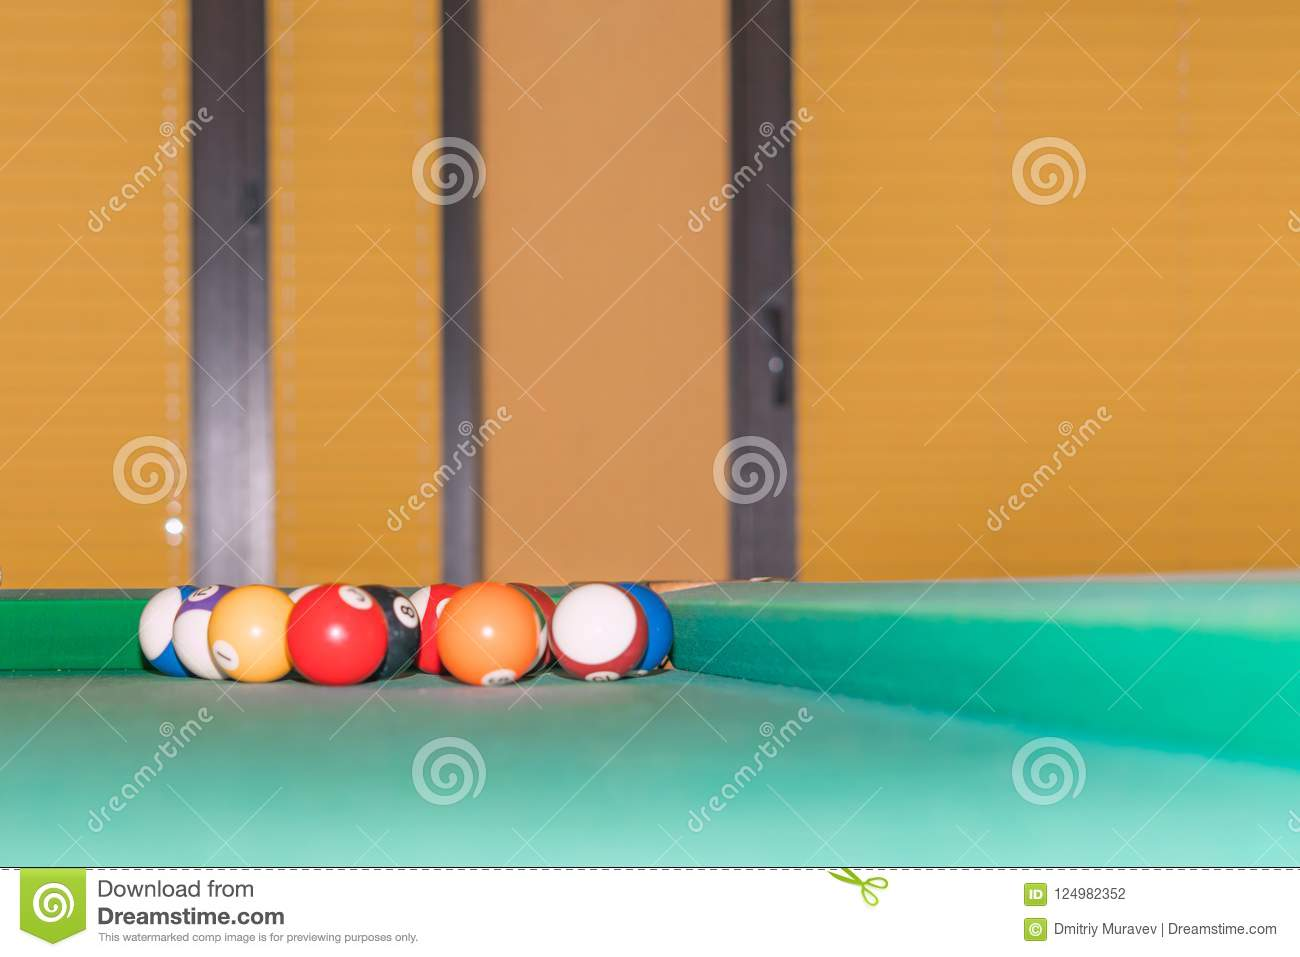 Boules de billard dans le coin de la table de billard